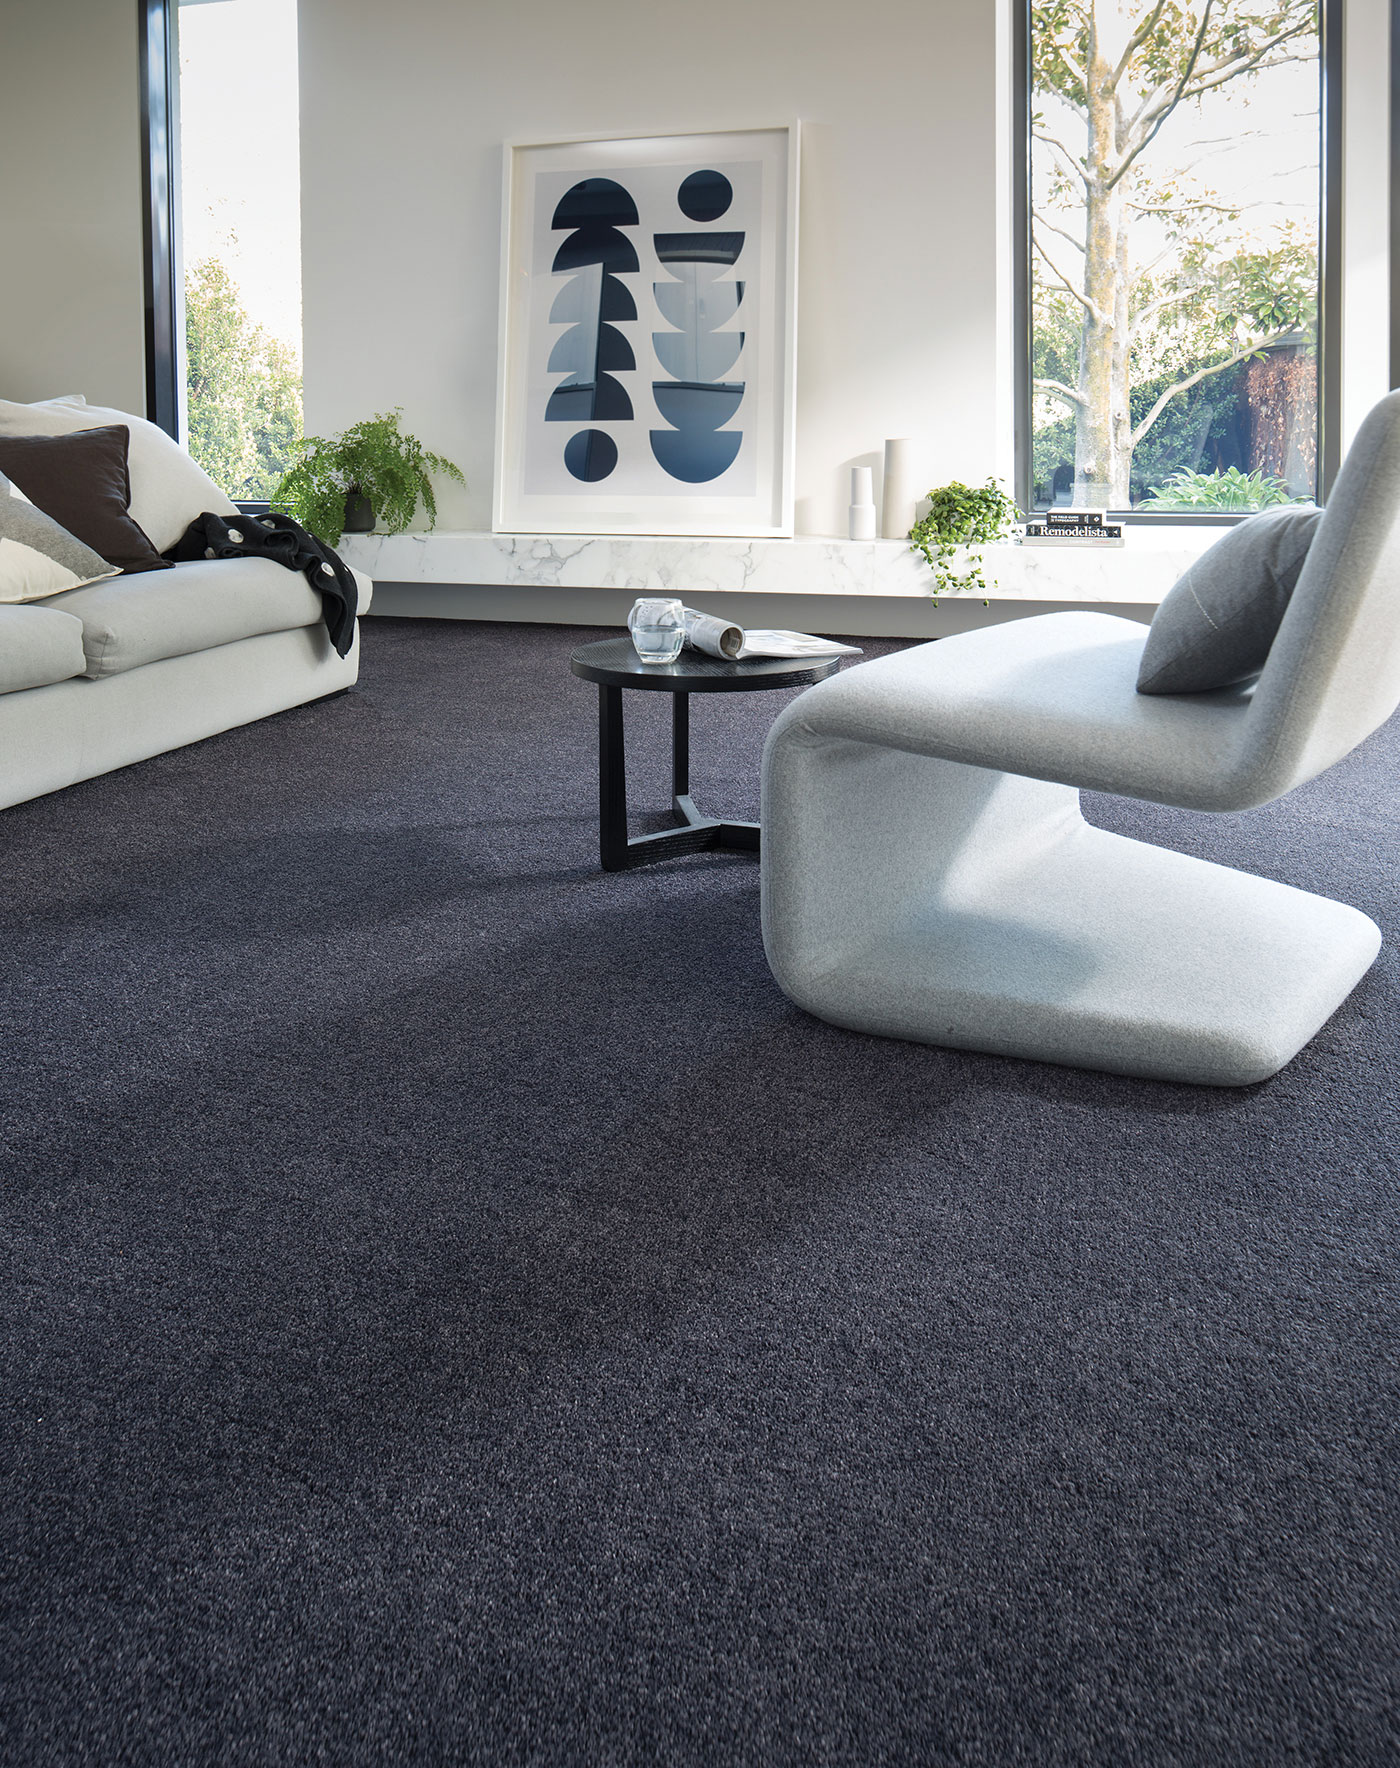 How To Choose The Right Carpet Type For Your Home Choices Flooring